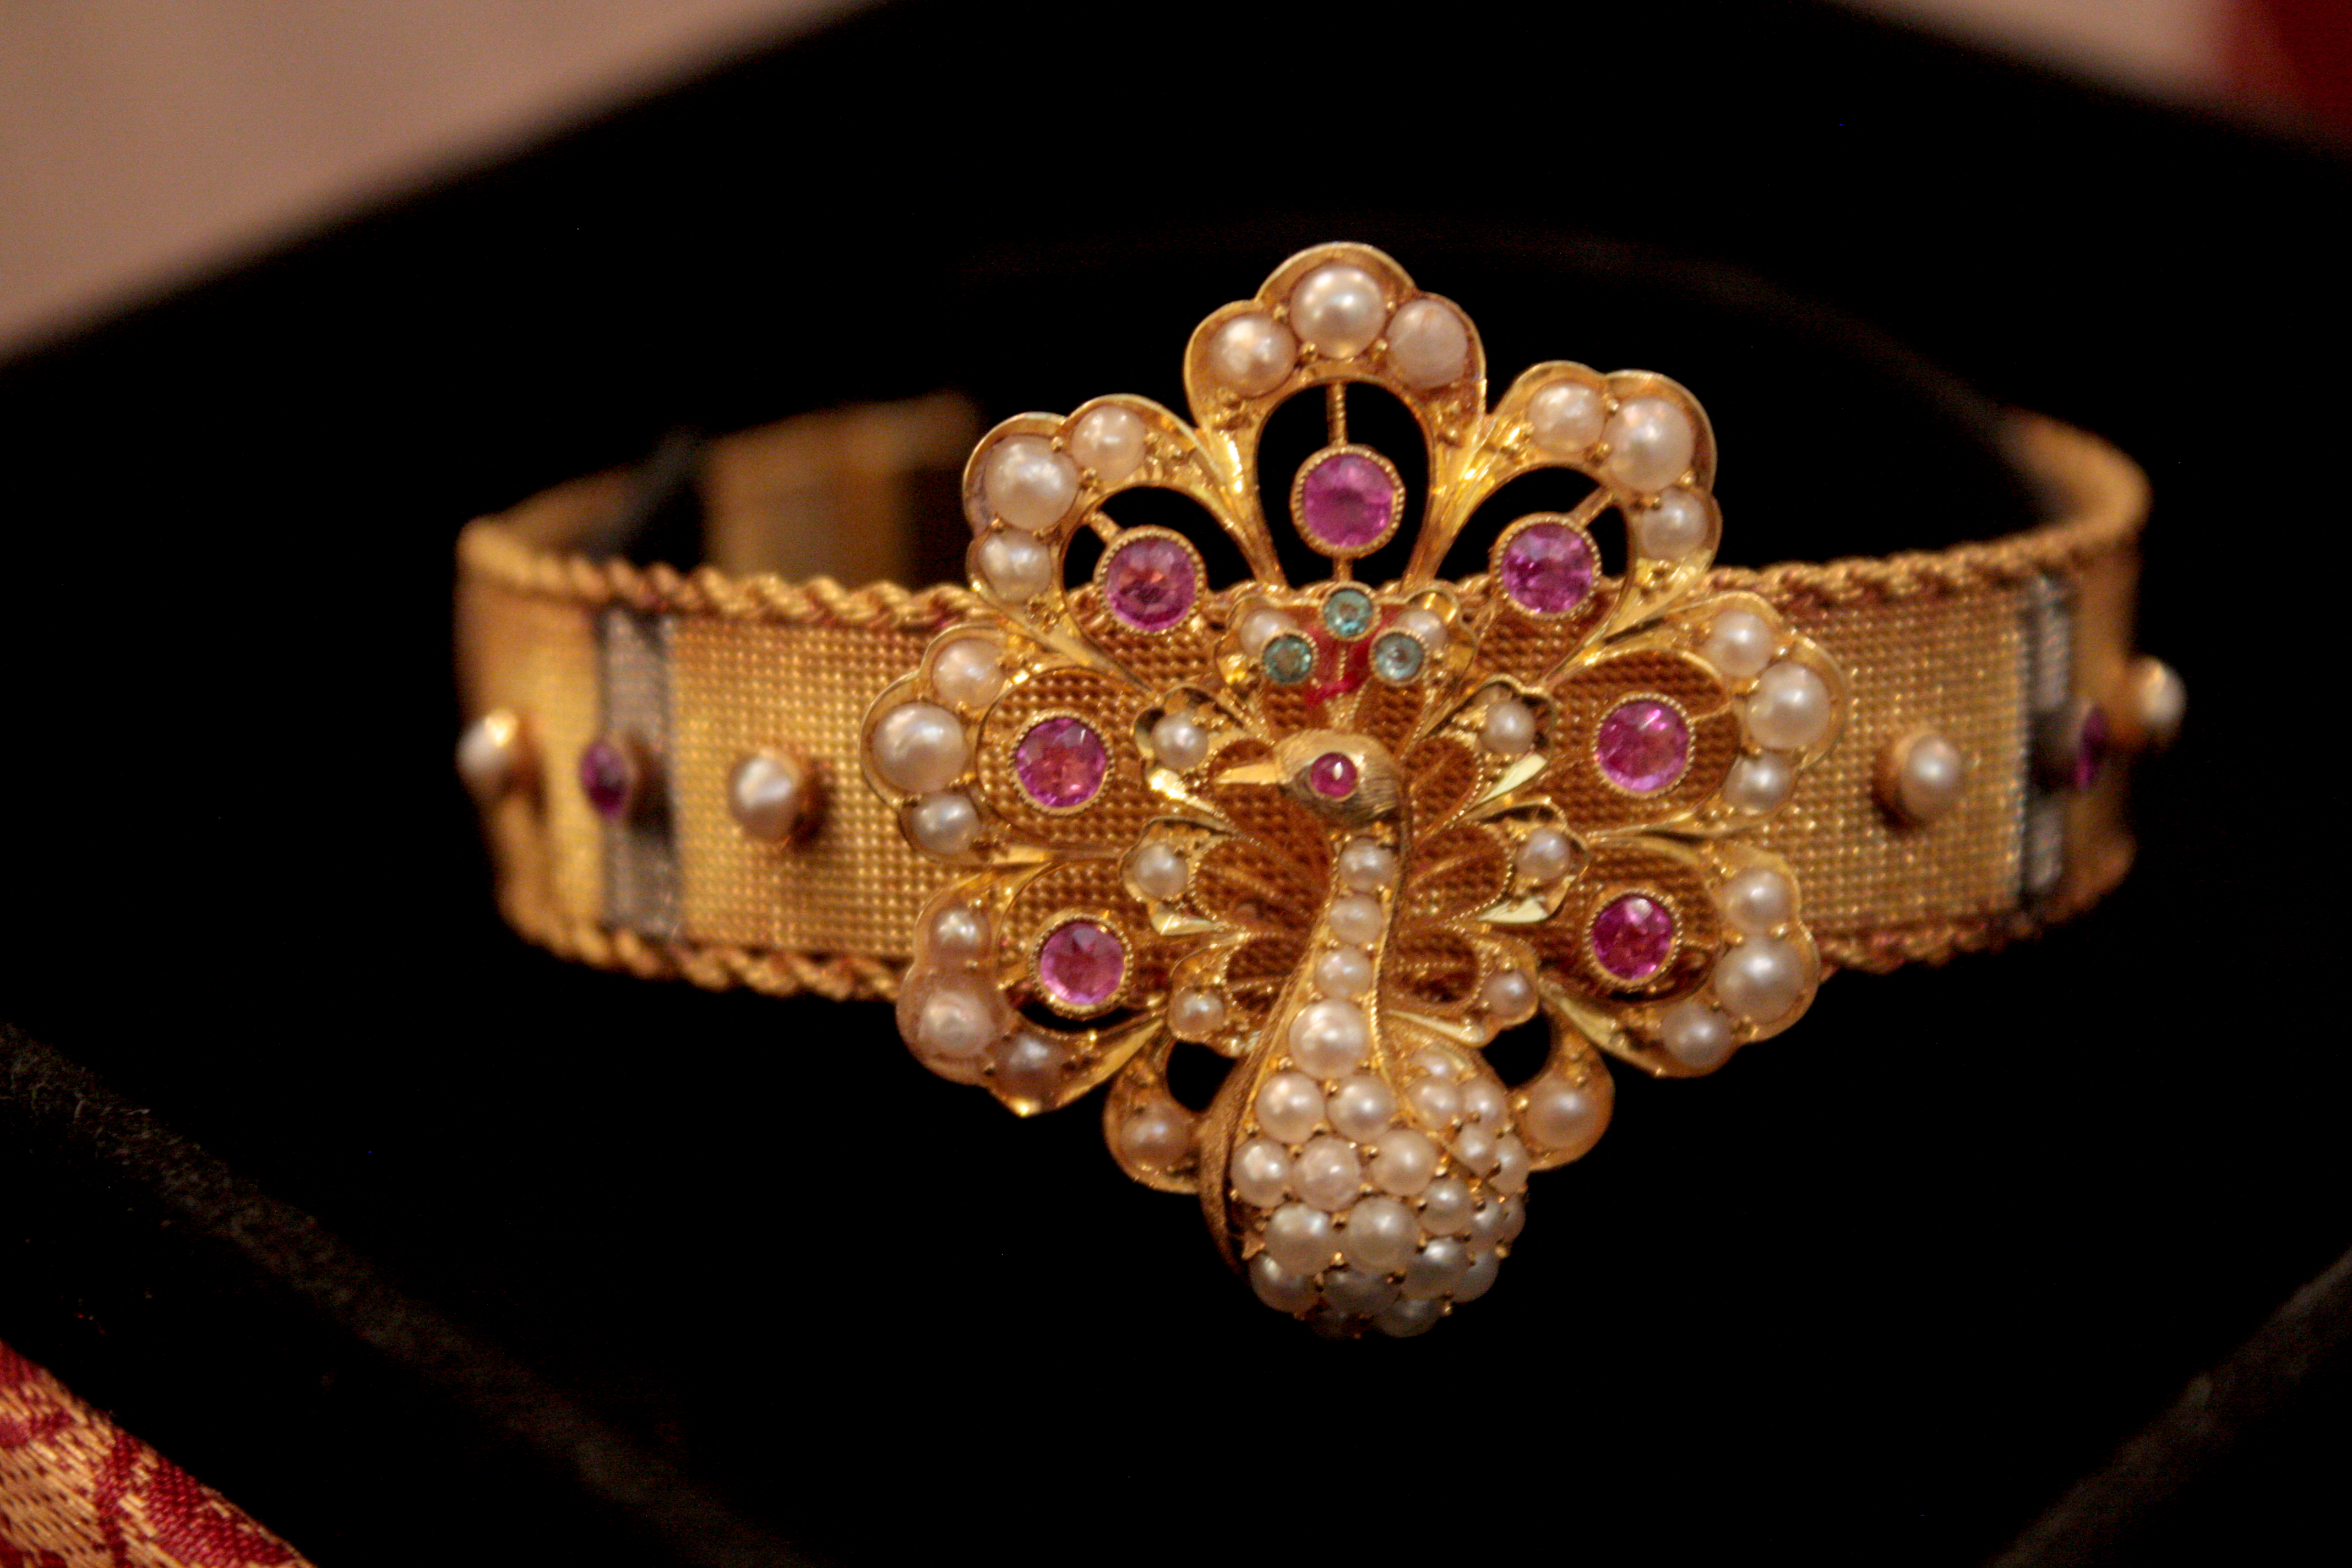 Rajni Malhotra_Amrit Vij_peacock bracelet_bought from an Englishman in Lahore in 1930